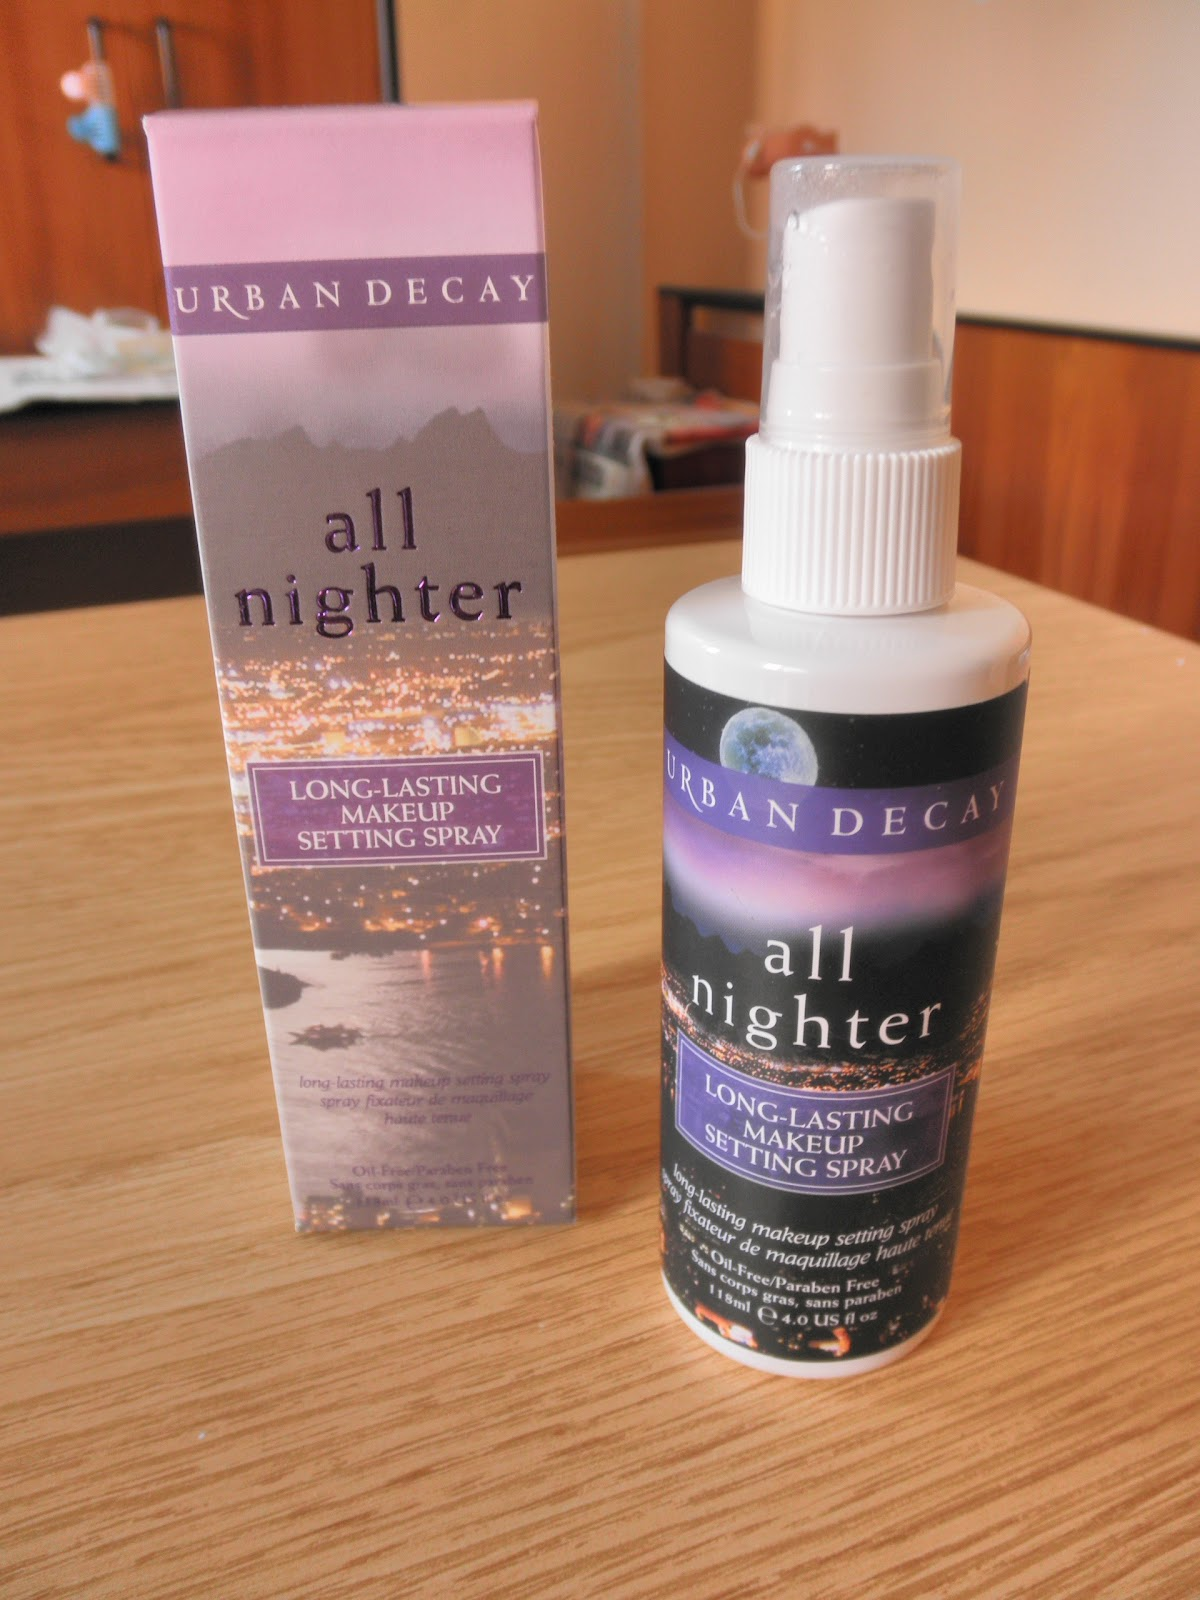 ... 101: Review: Urban Decay All Nighter Long-lasting Makeup Setting Spray